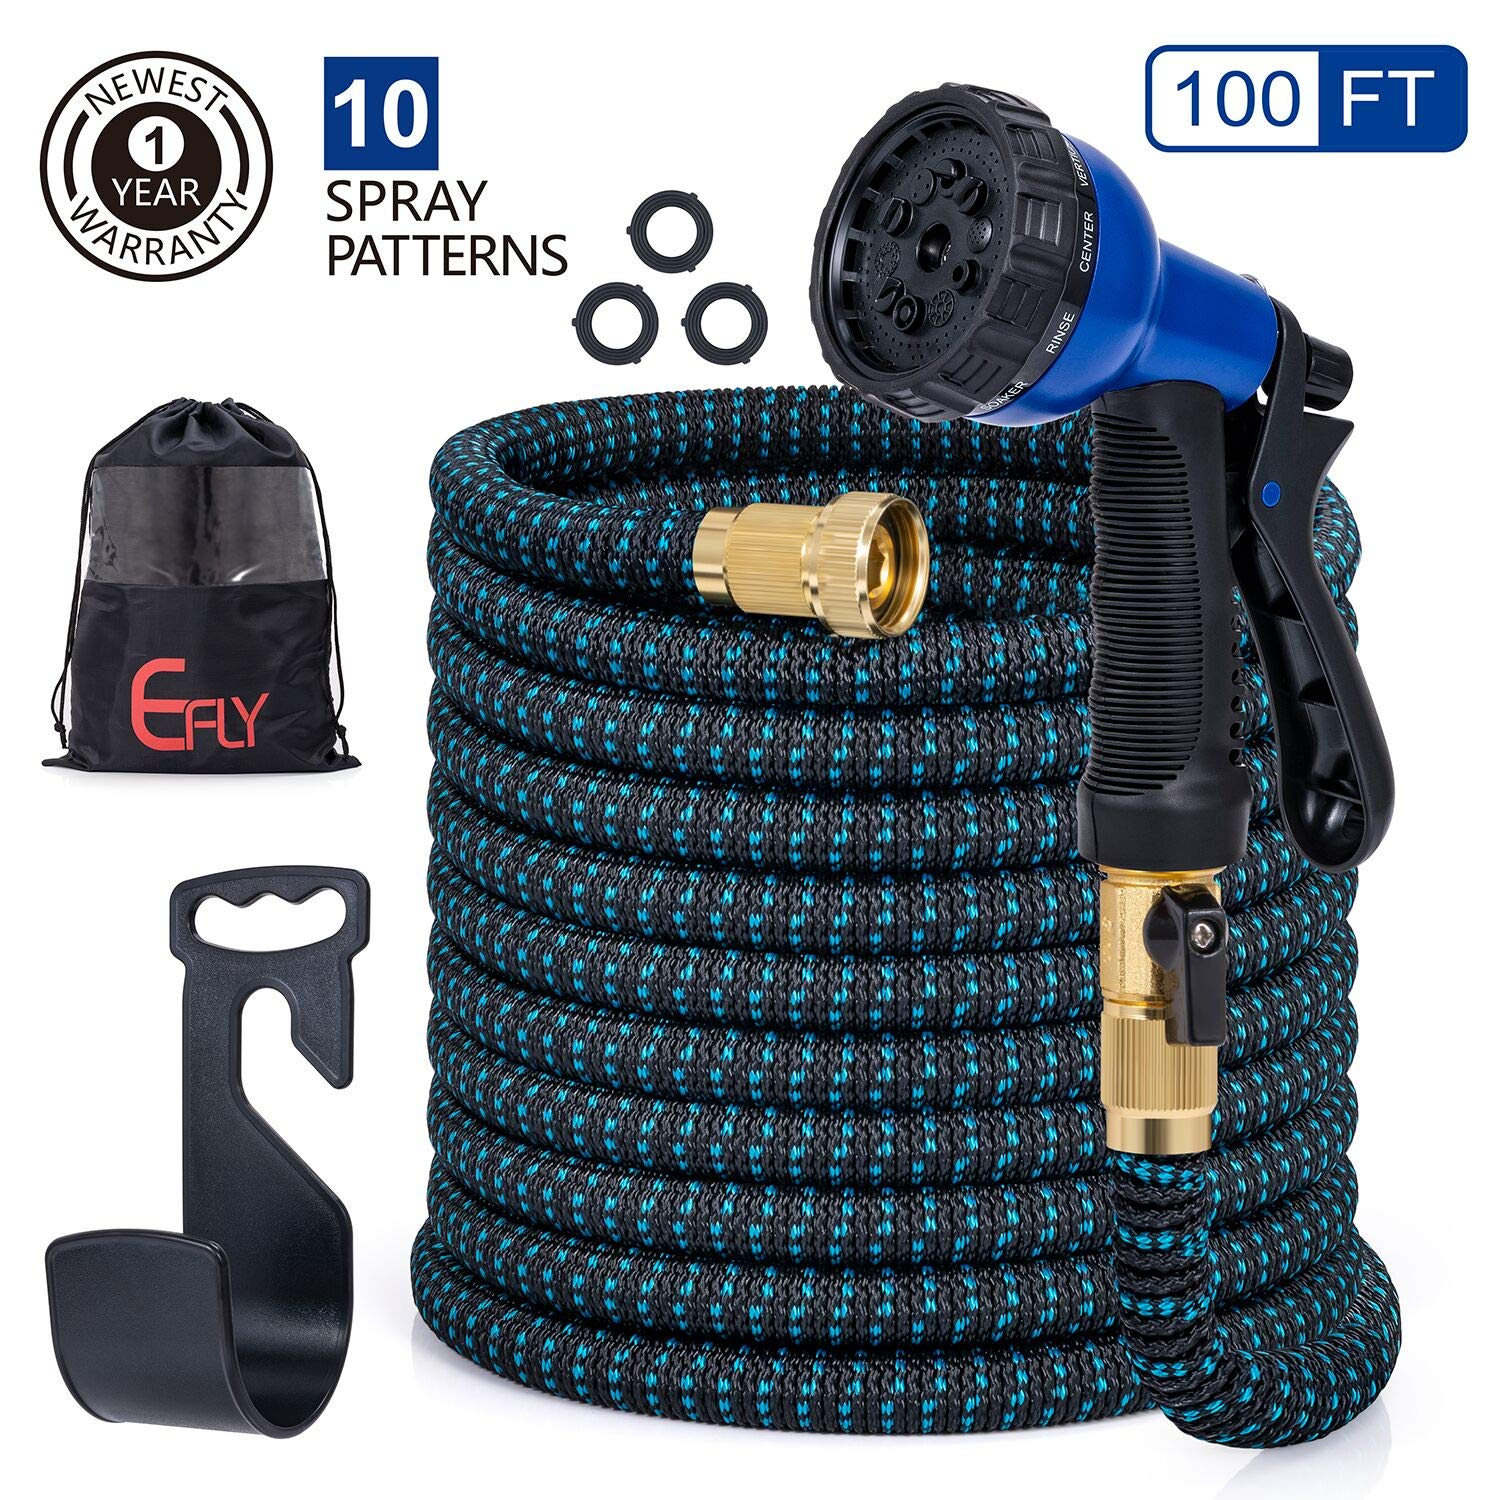 EFLY 2020 New Expandable Garden Hose 100 FT, Water Hose with Double Latex Core/Durable/Flexible/No-Kink/Lightweight/10 Function Spray Hose Nozzle & Bag & Plastic Holder (Blue, 100)